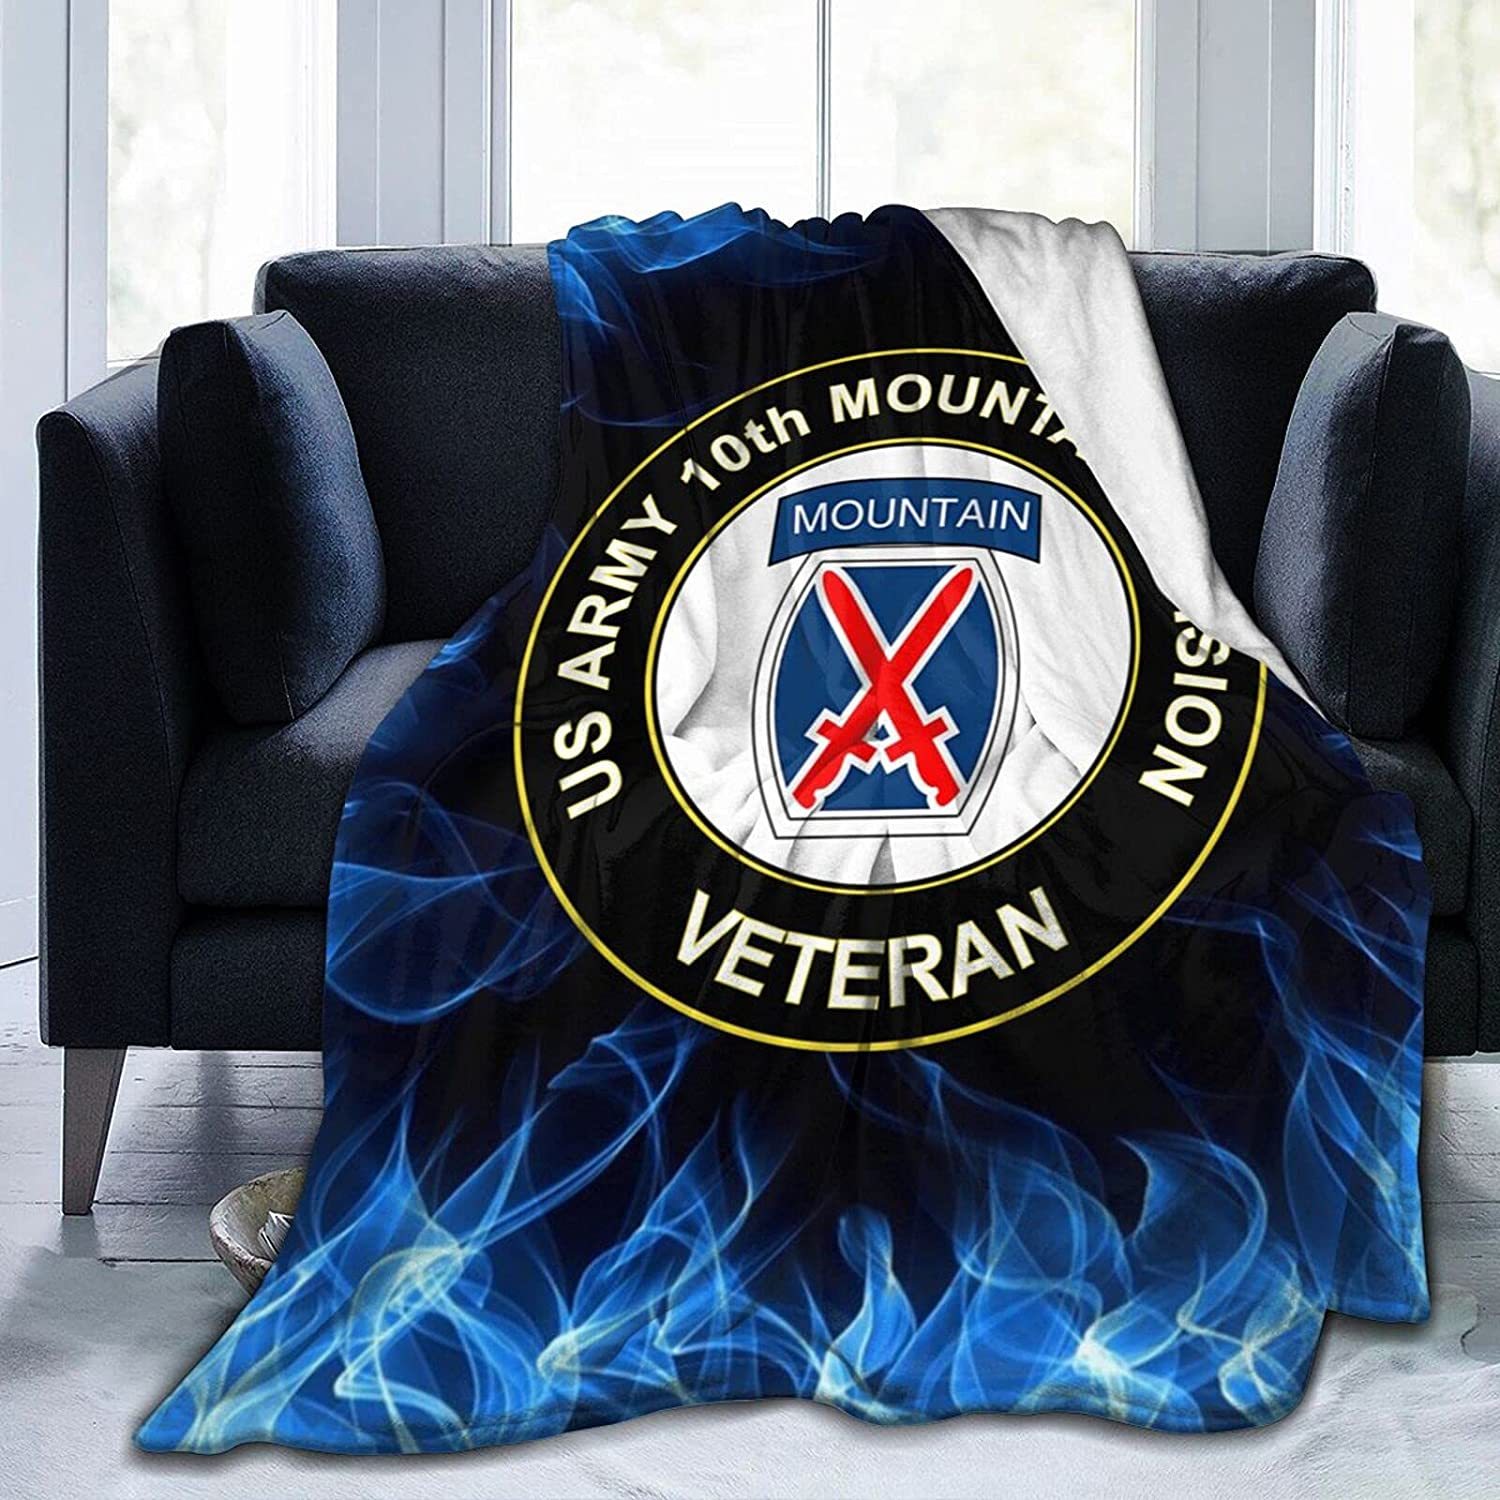 Us Army Veteran Ranking TOP16 10th Mountain Flannel Blanket Division Infantry Philadelphia Mall